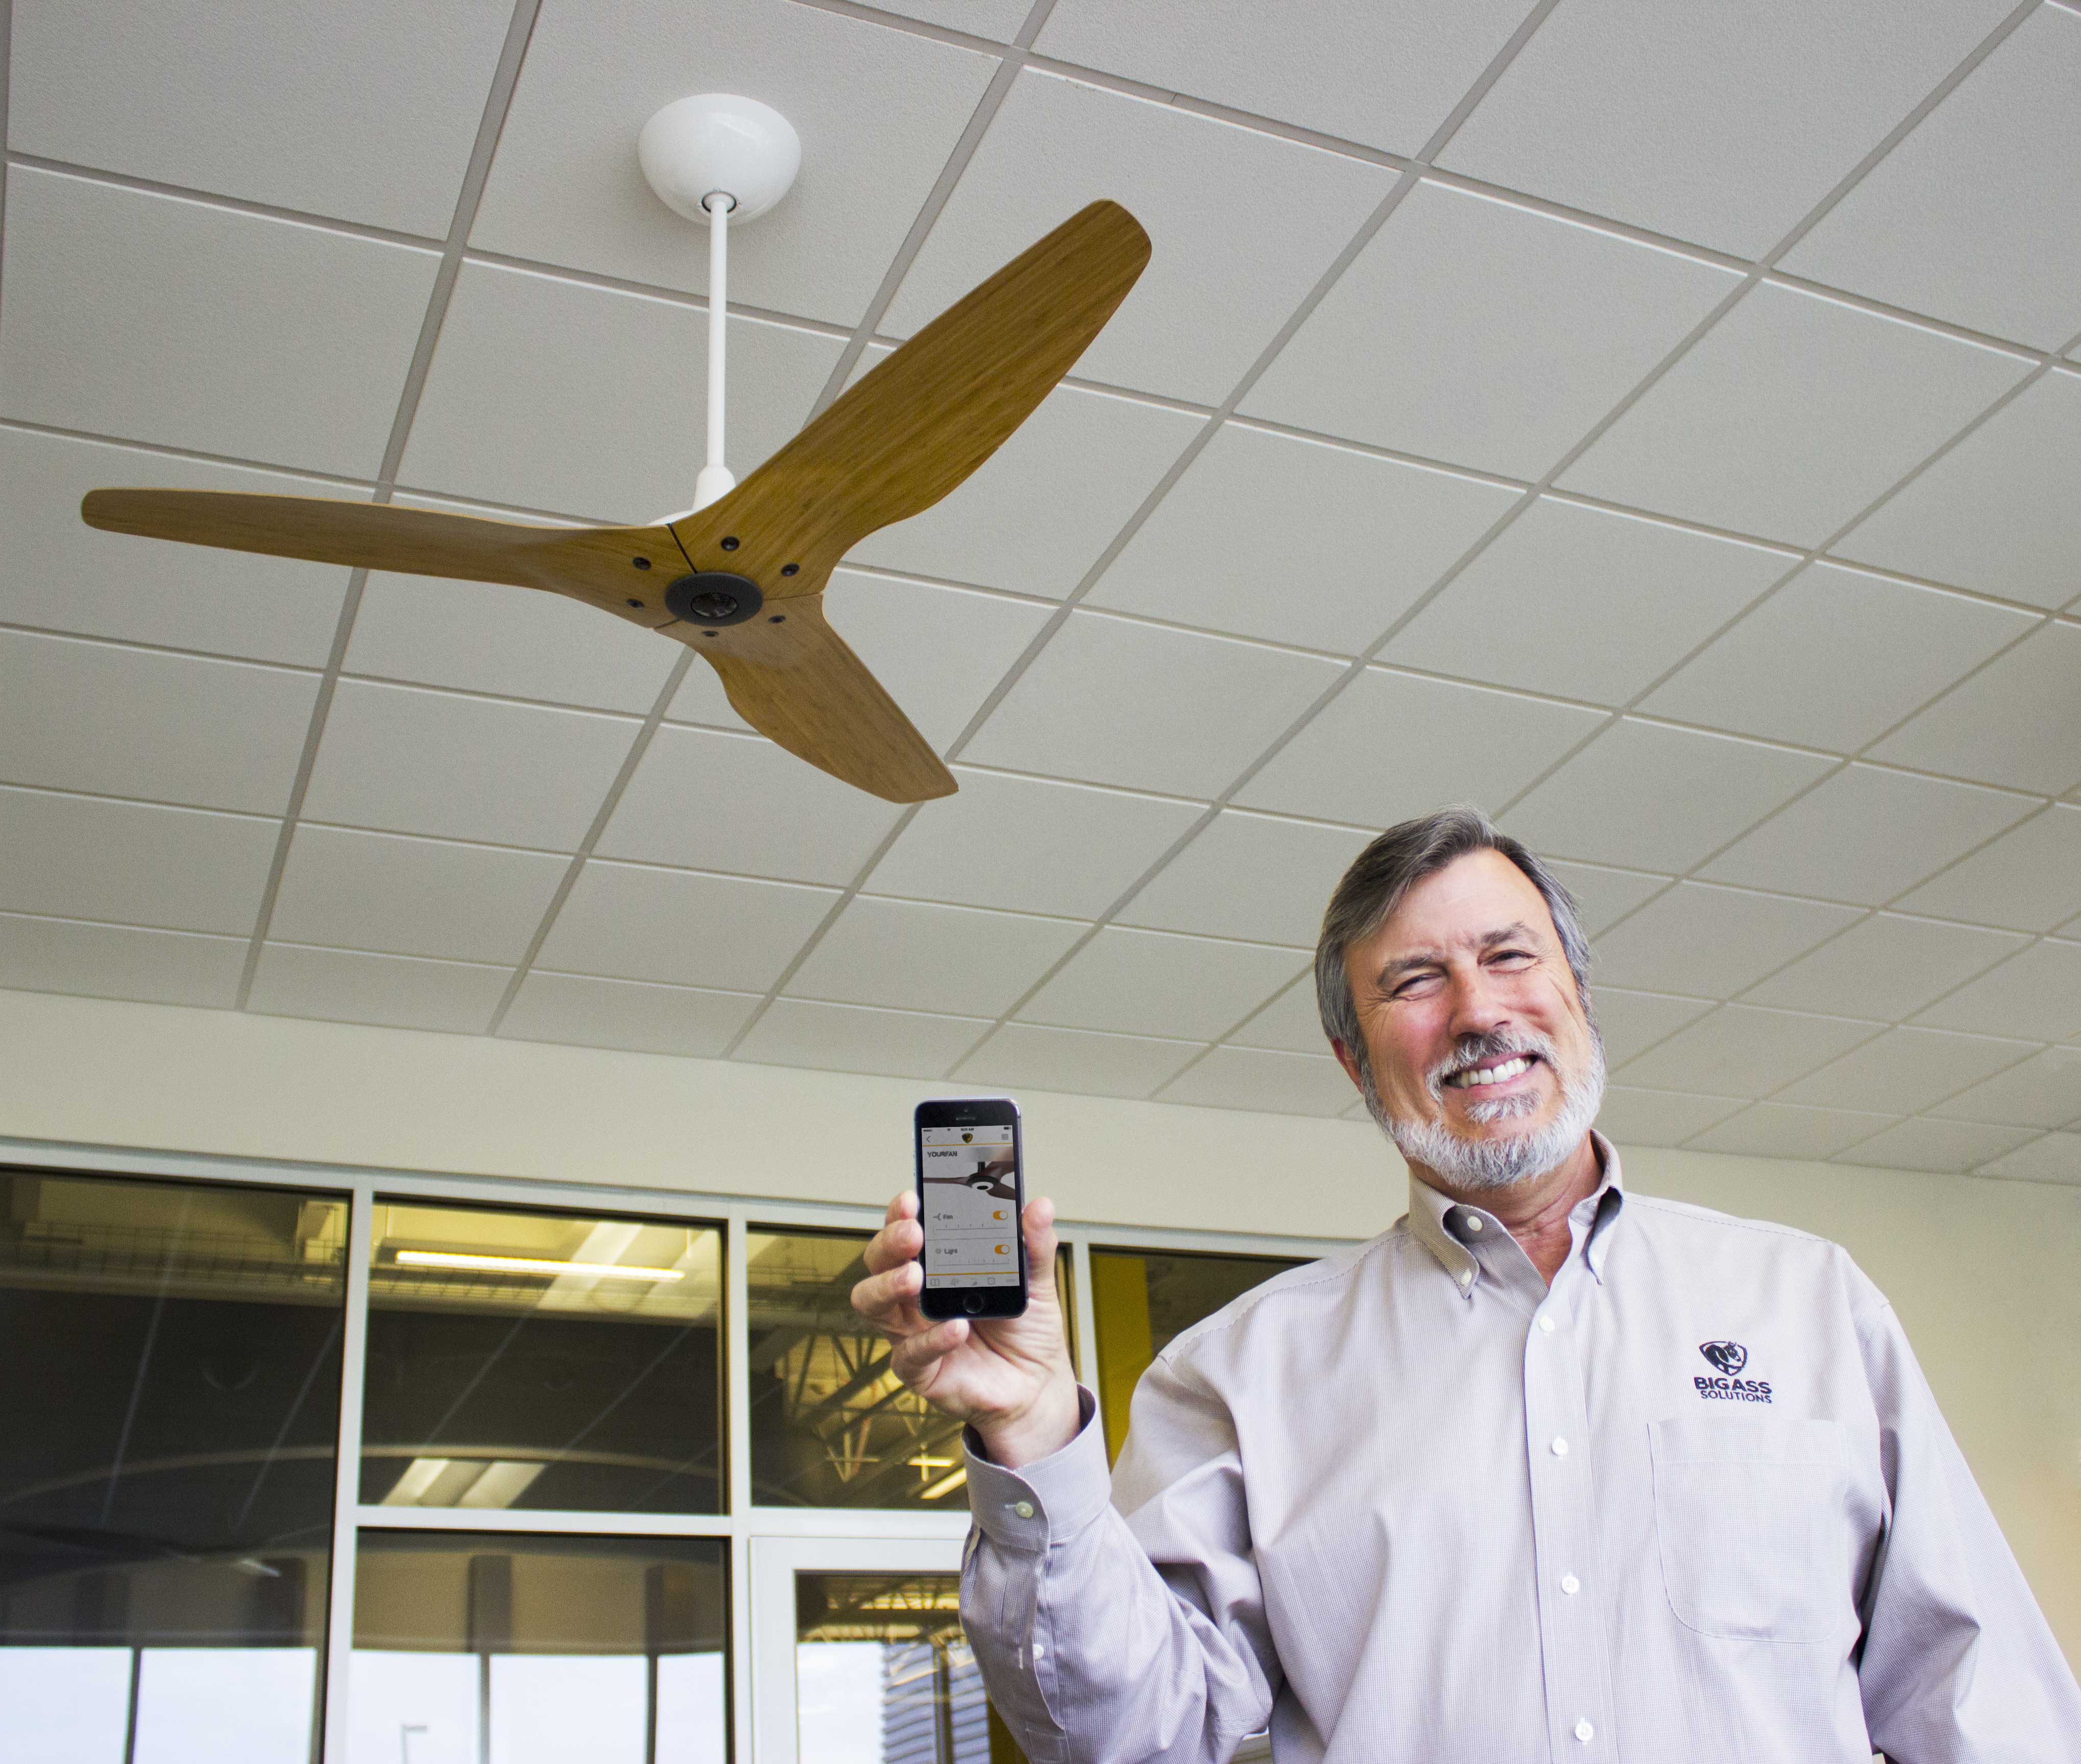 big ass fans founder and ceo carey smith shows off the senseme app and smart haiku ceiling fan. Black Bedroom Furniture Sets. Home Design Ideas